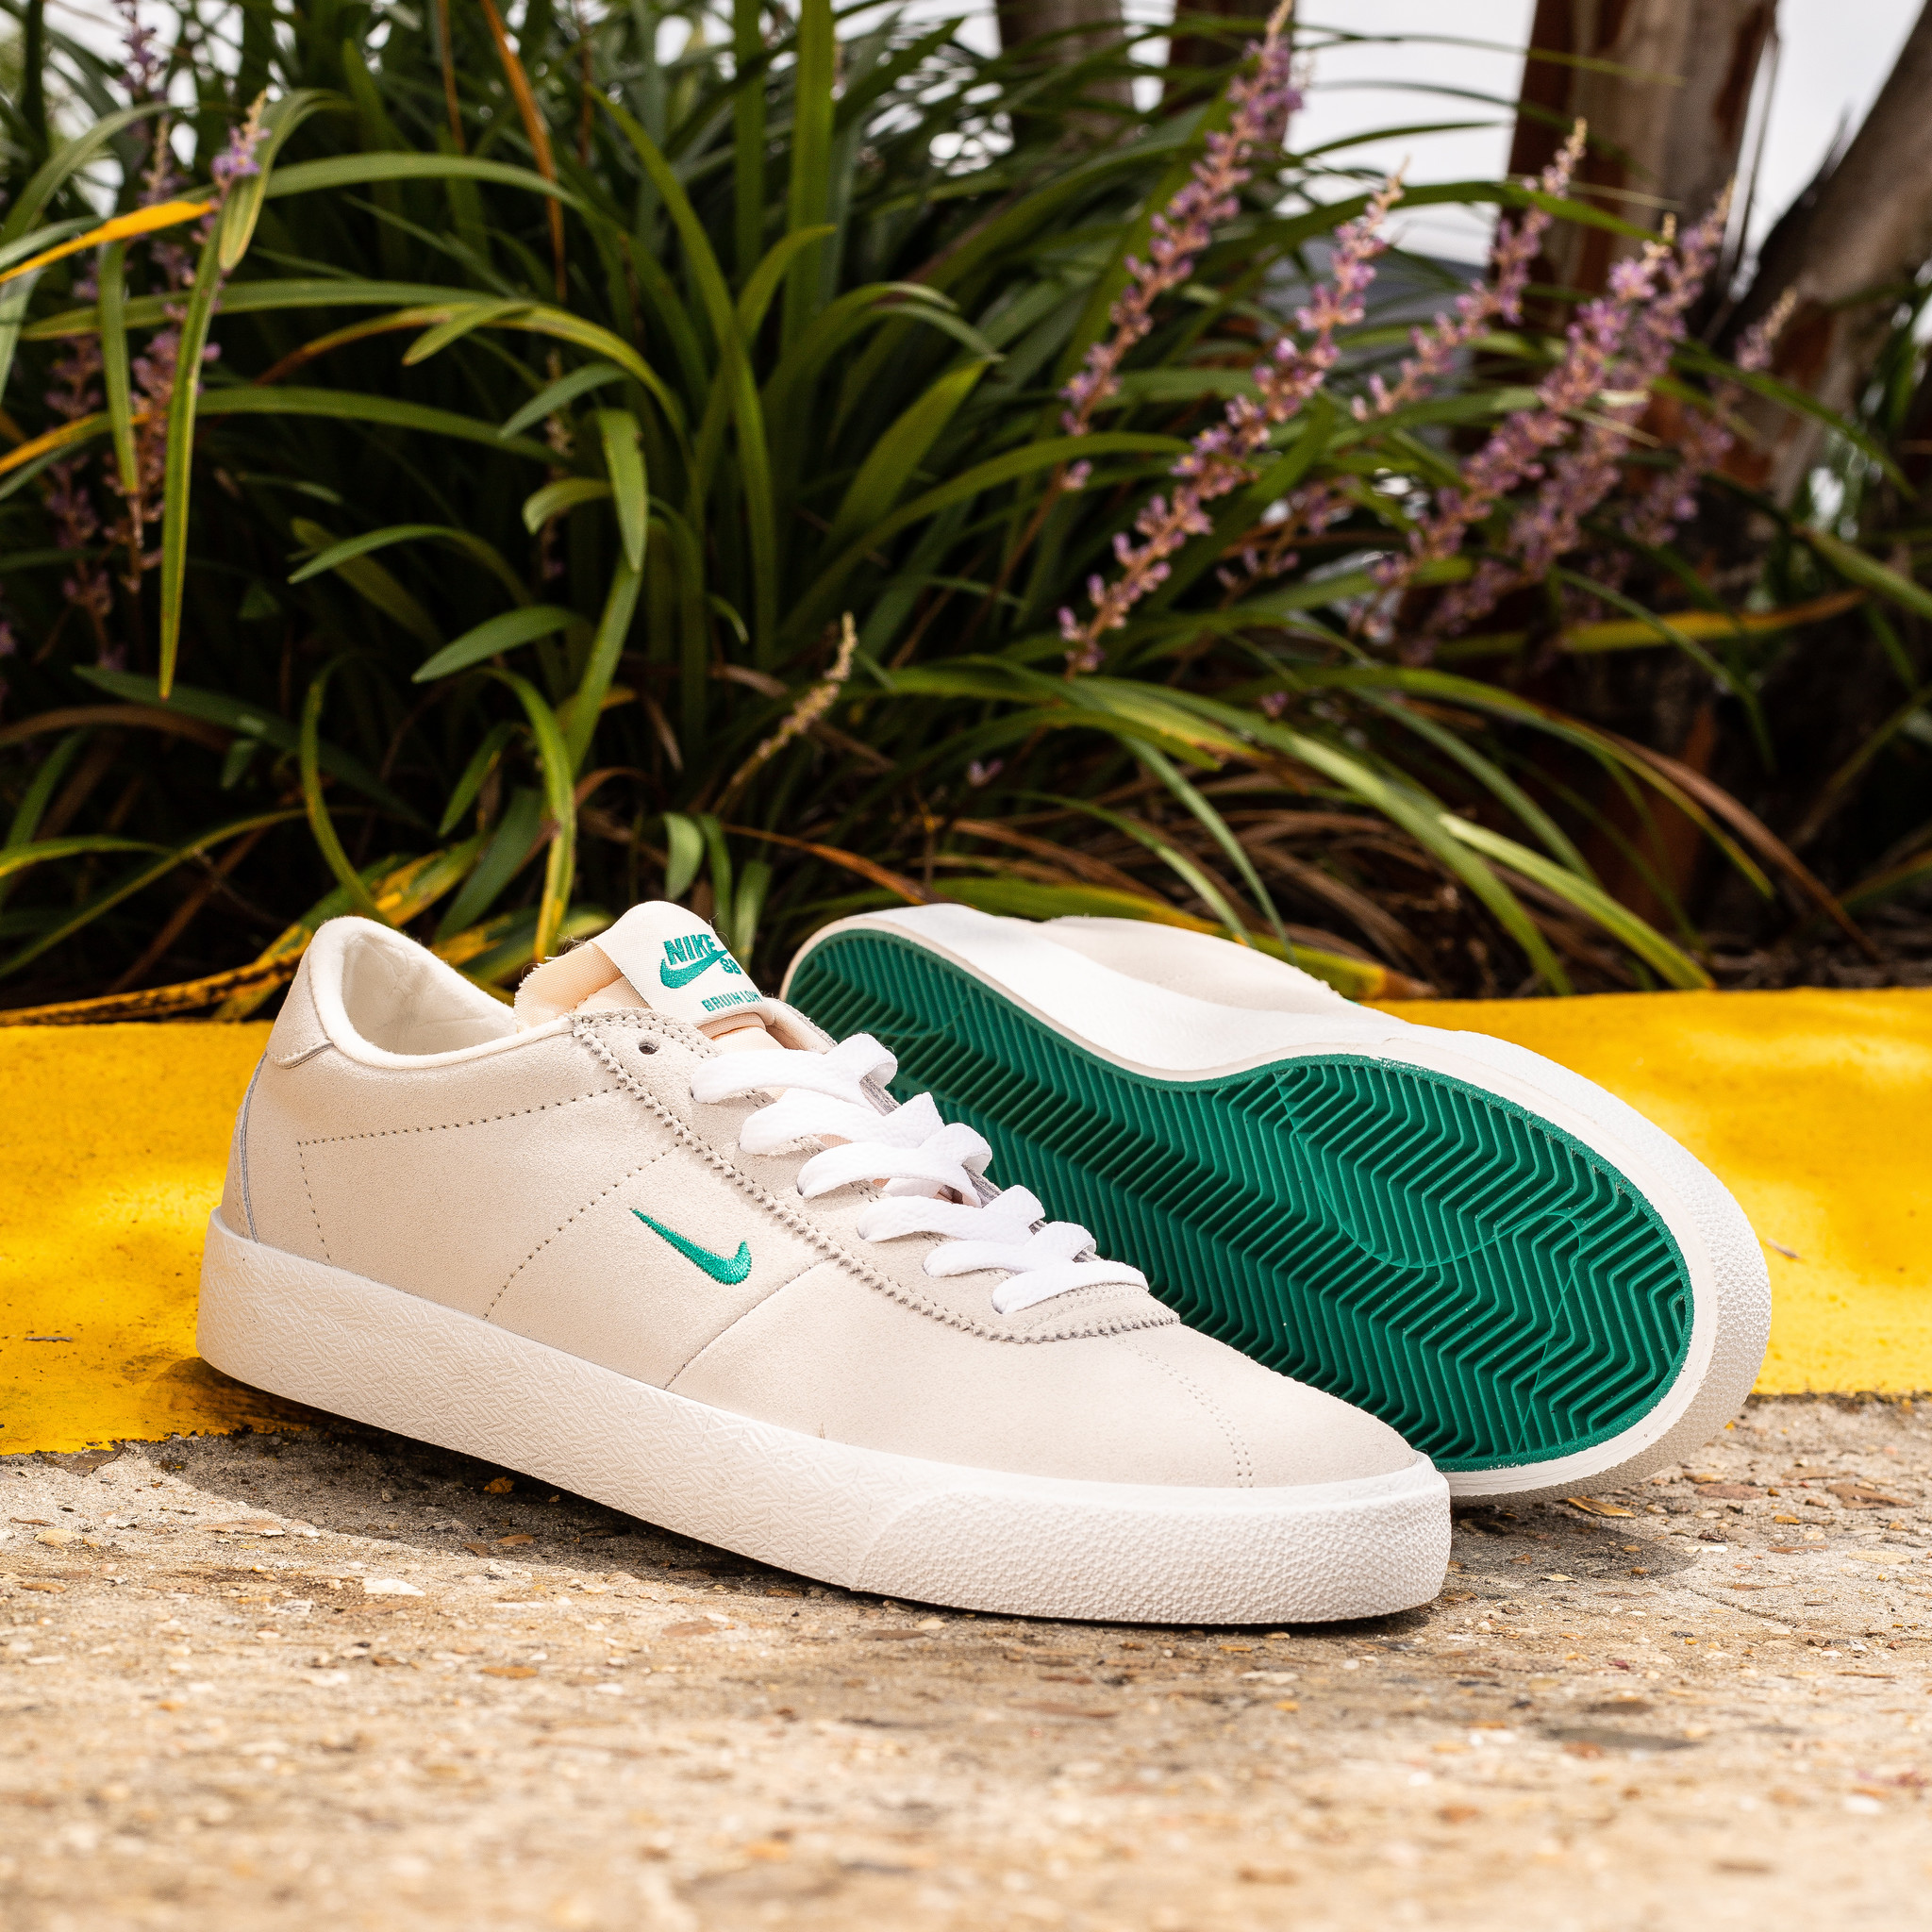 Nike SB Bruin light cream/neptune green